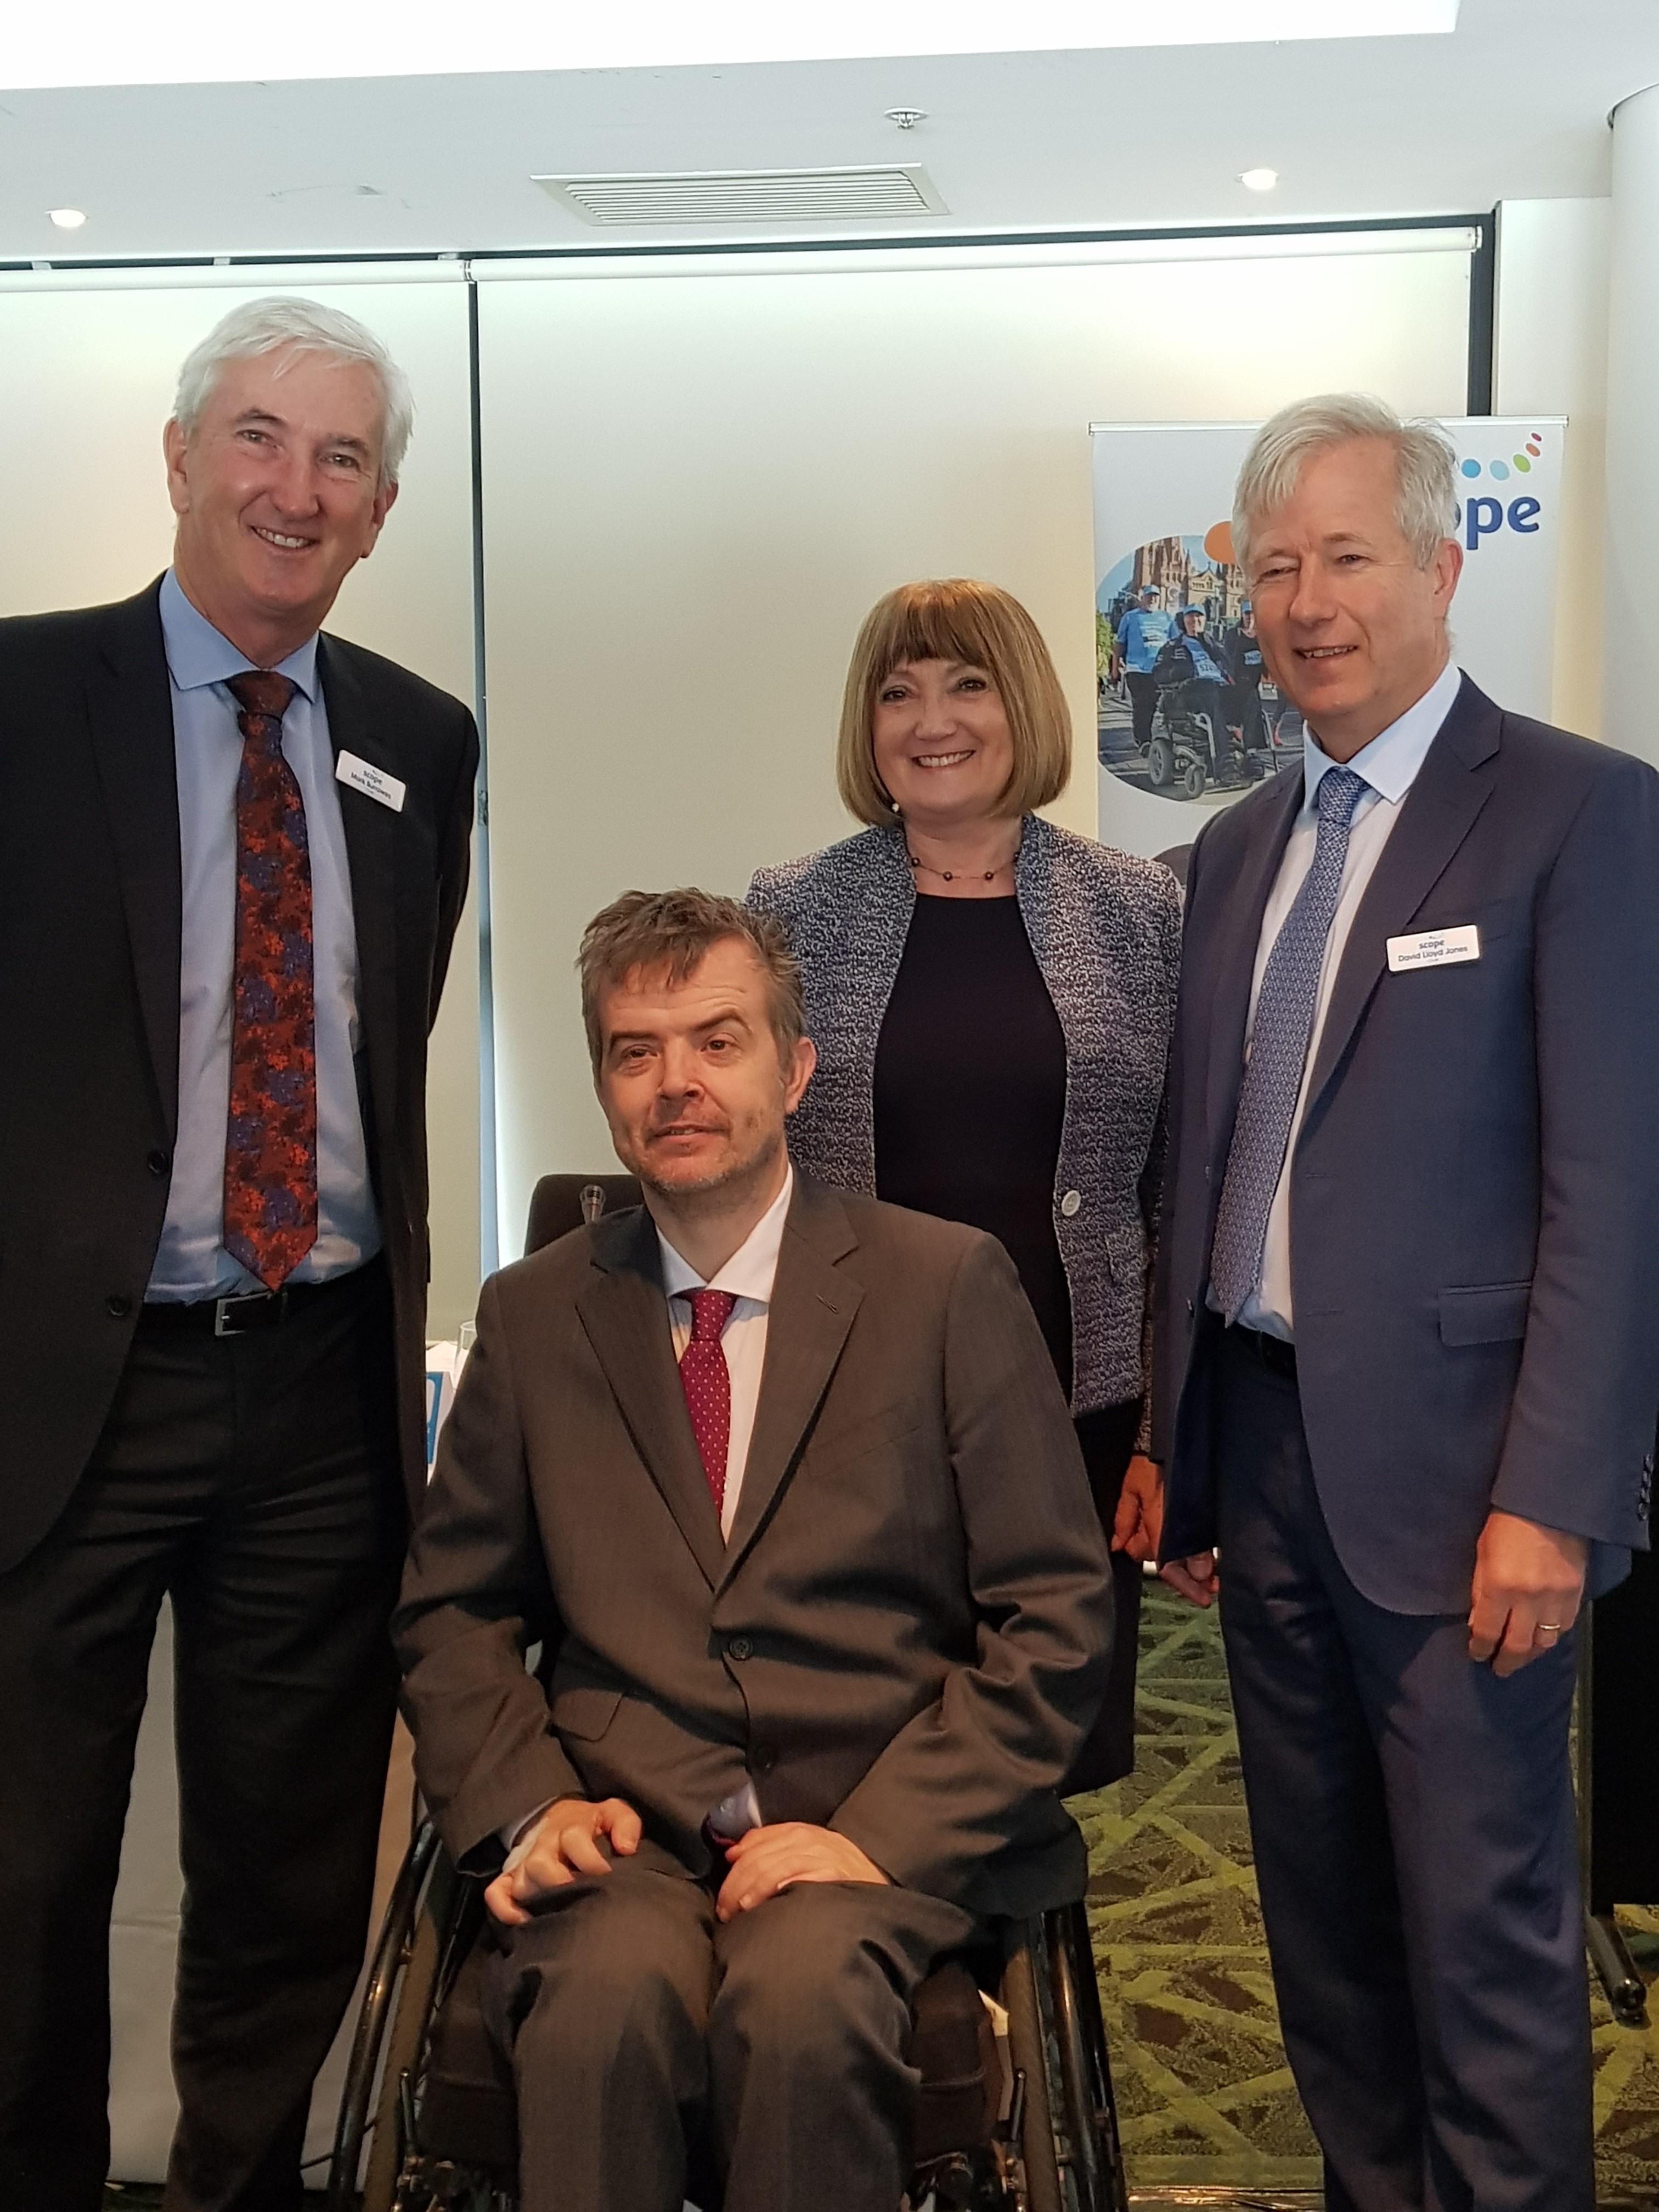 Mark Burrowes, Dr Jennifer Fitzgerald, and David Lloyd Jones with Dr Ben Gauntlett, Disability Discrimination Commissioner at Scope AGM 2019